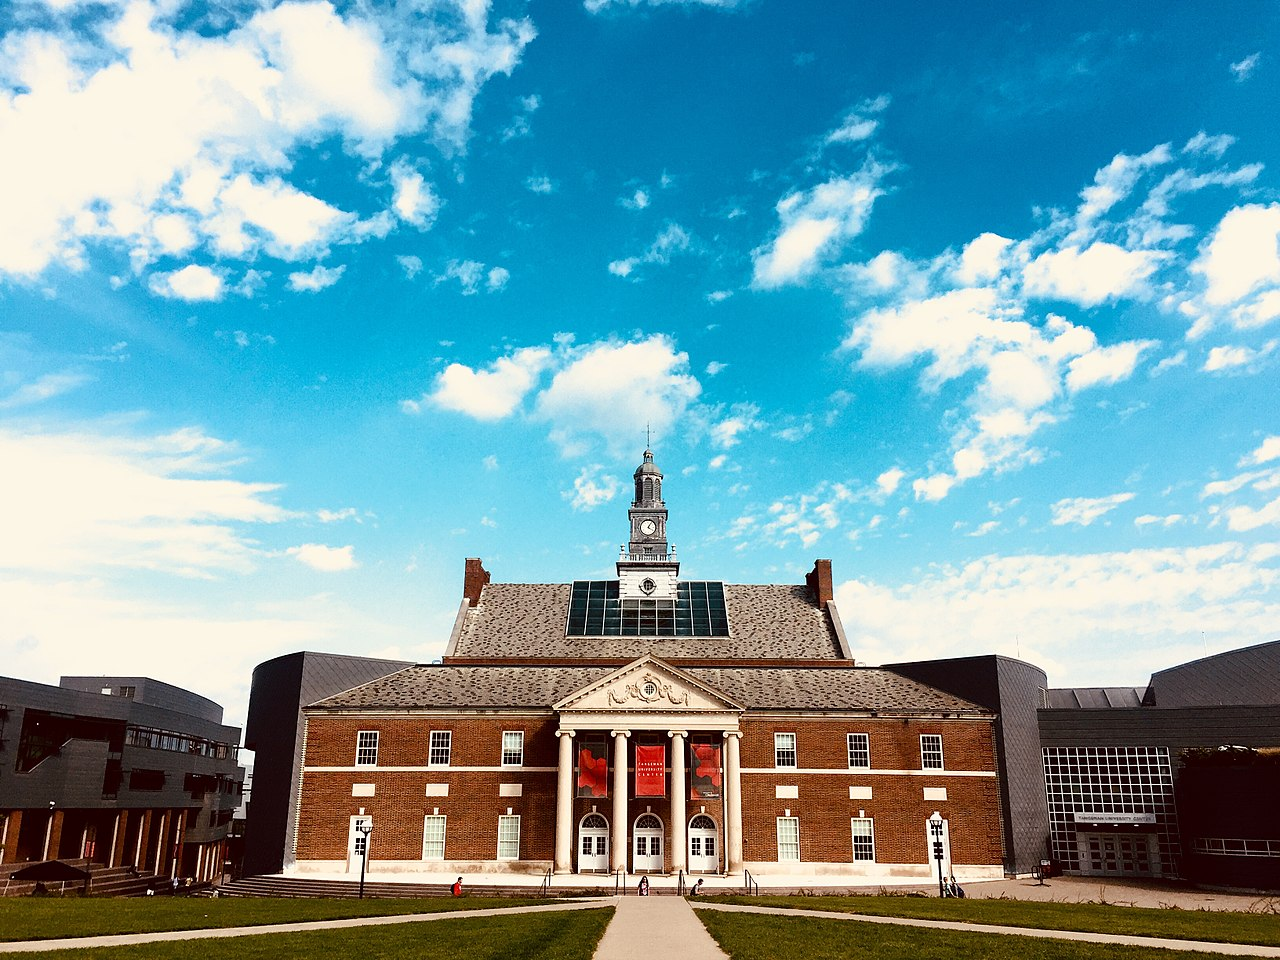 The Tangeman University Center at the University of Cincinnati. Wikimedia Commons.